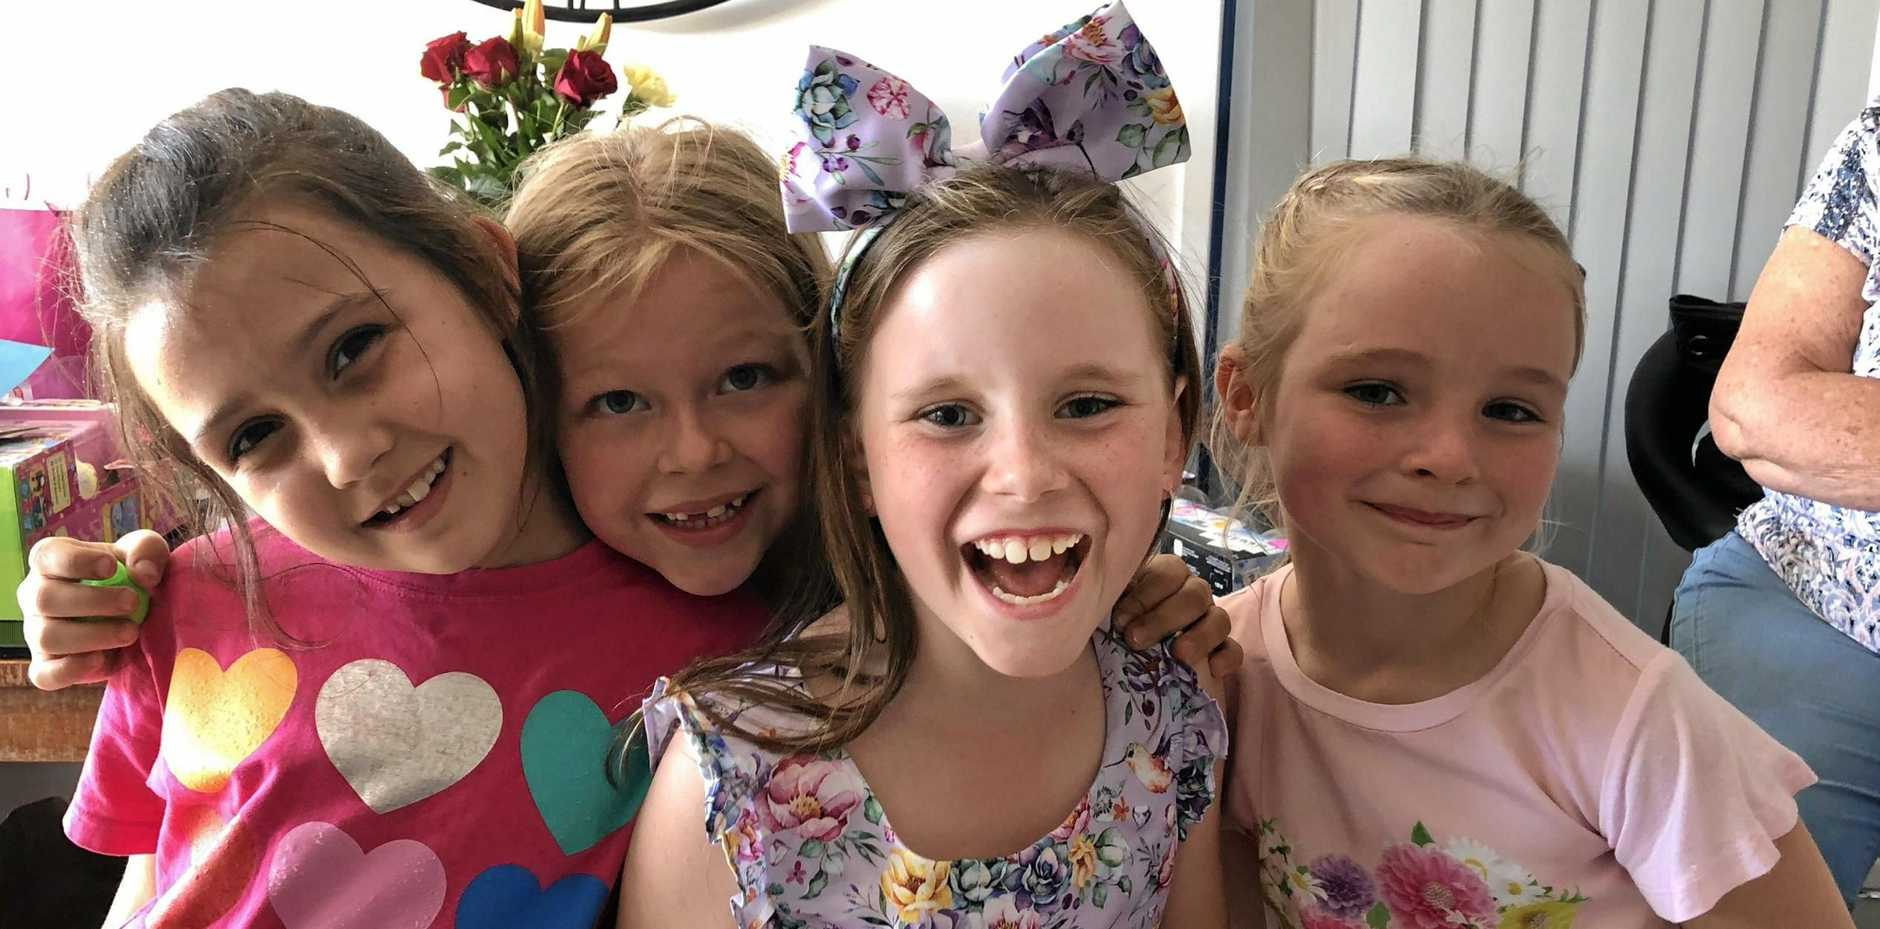 Olivia Douglas (centre, right), with her friends Brydee (left), Miley (centre, left) and Olivia's cousin Amelia (right) in much happier times.